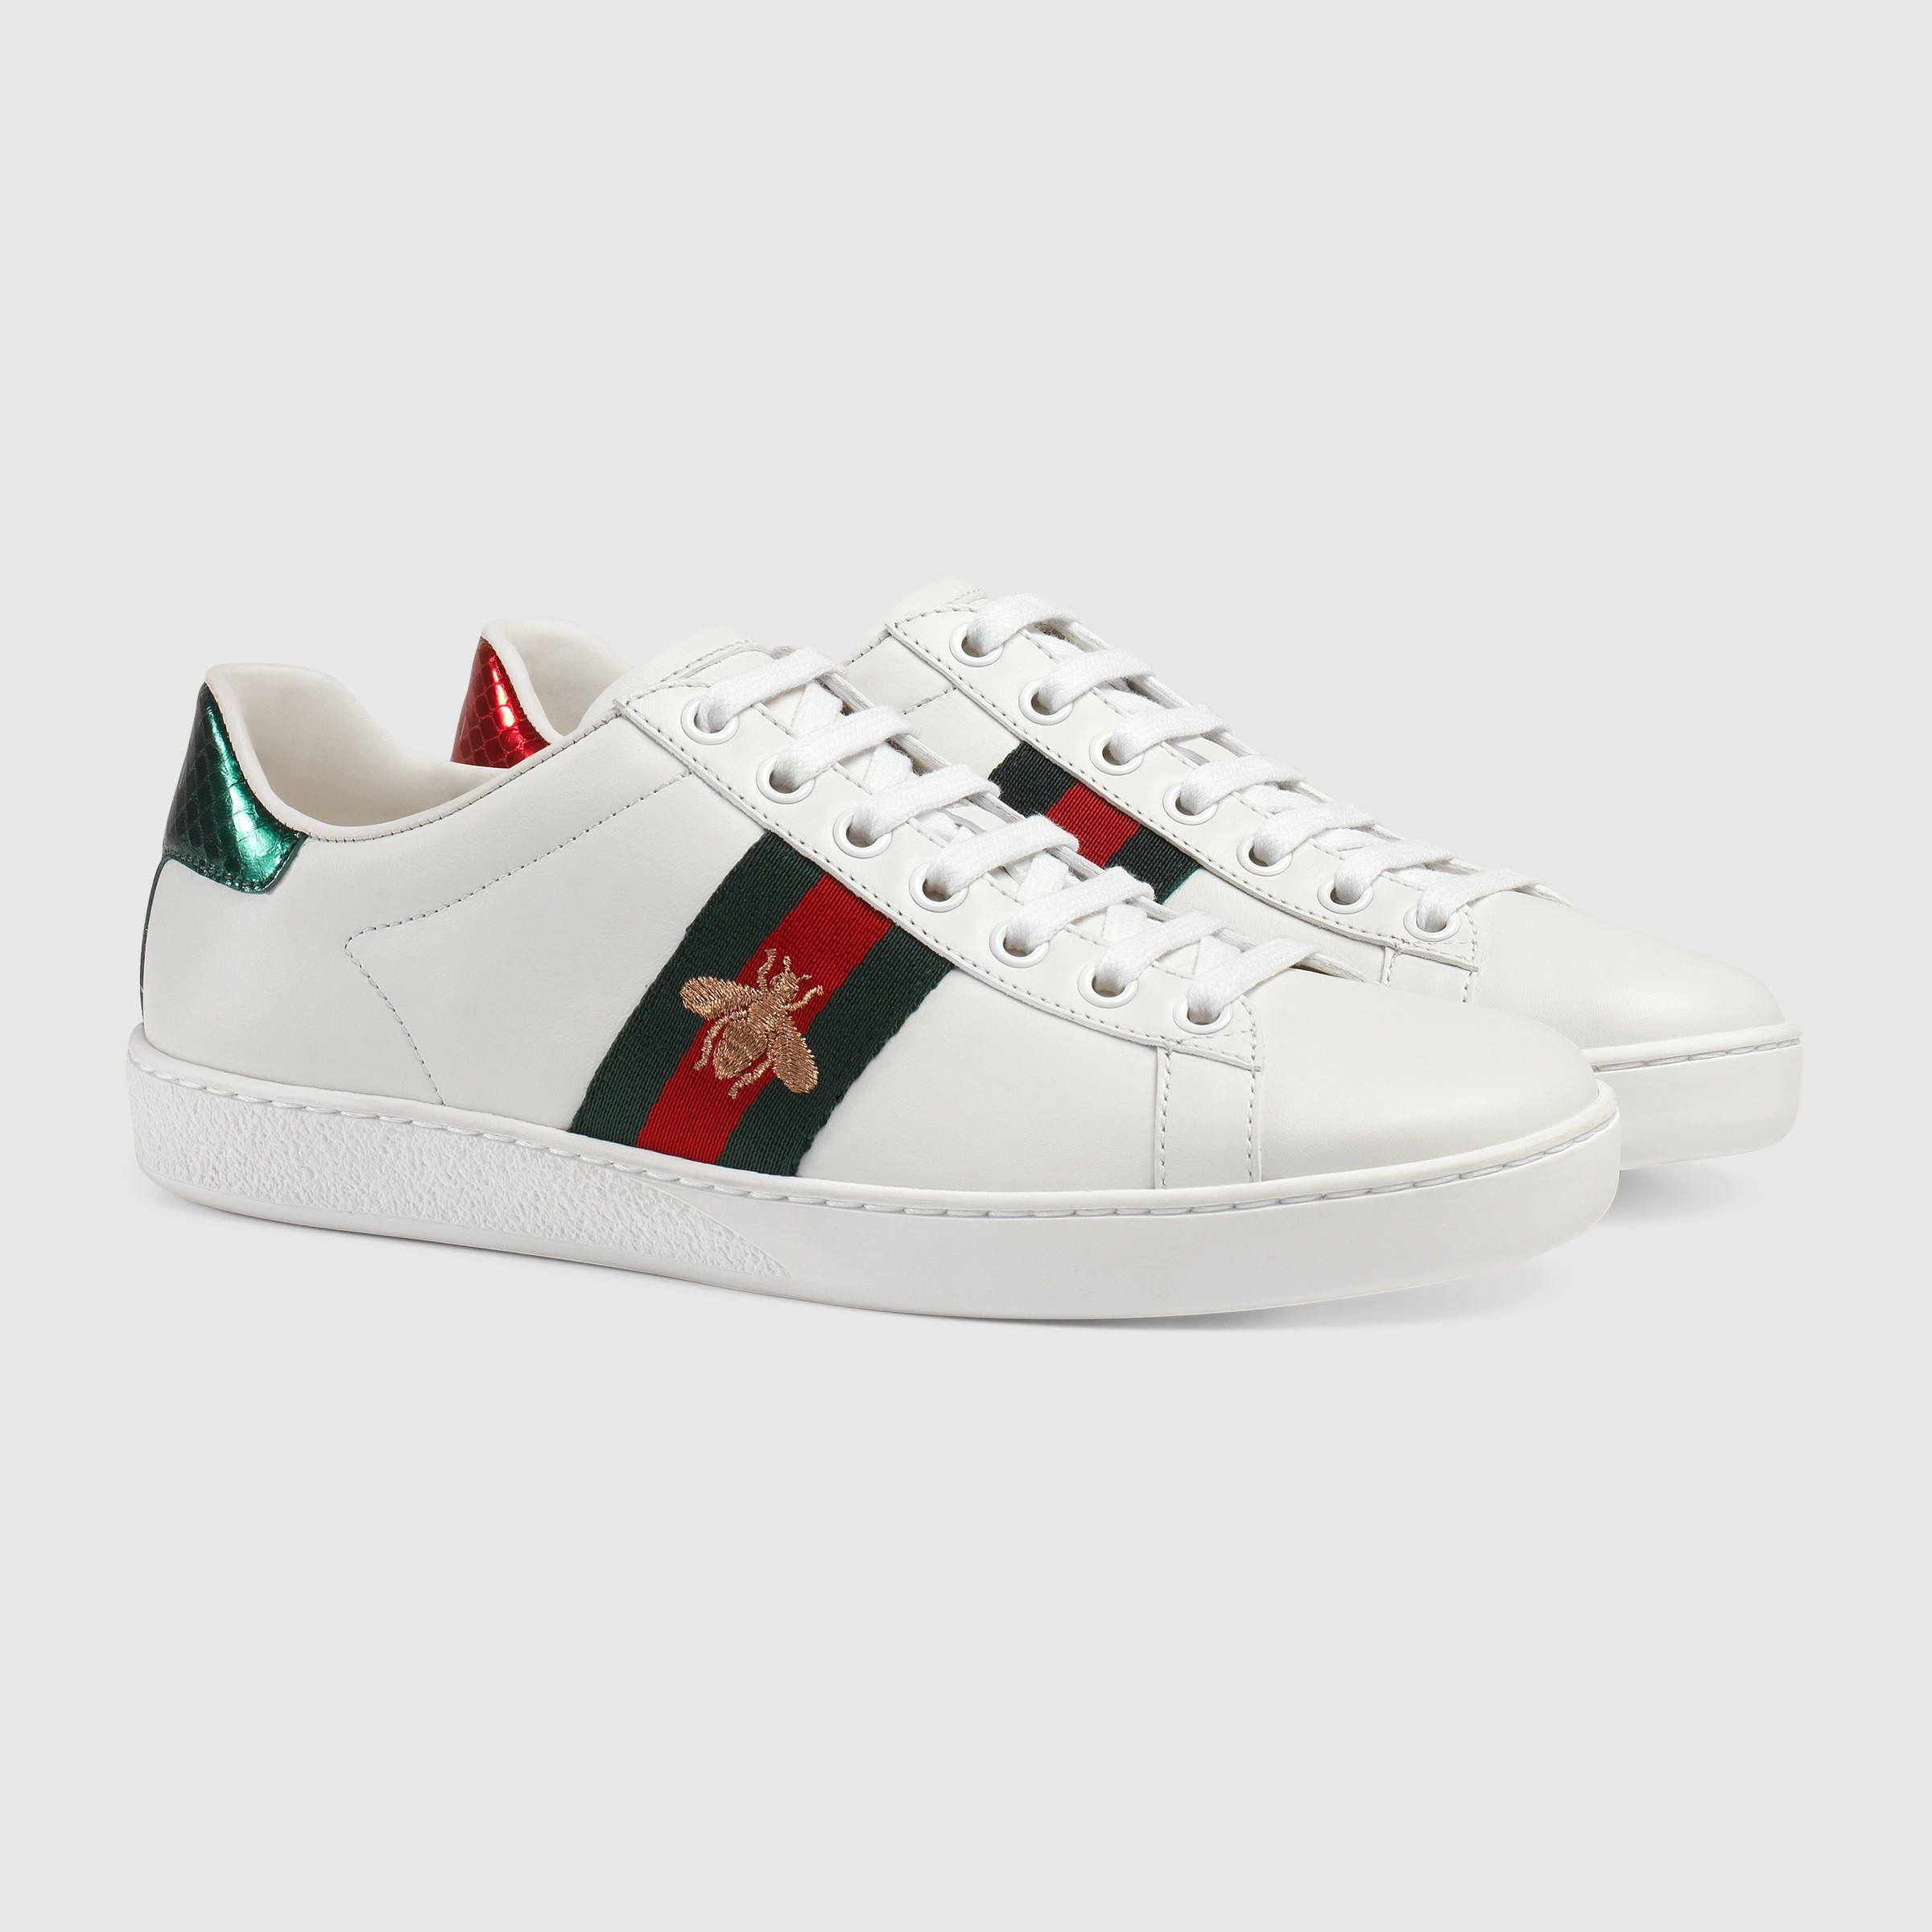 0fd9a7e55853 Baskets basses Ace brodées - Gucci Baskets Femme 431942A38G09064